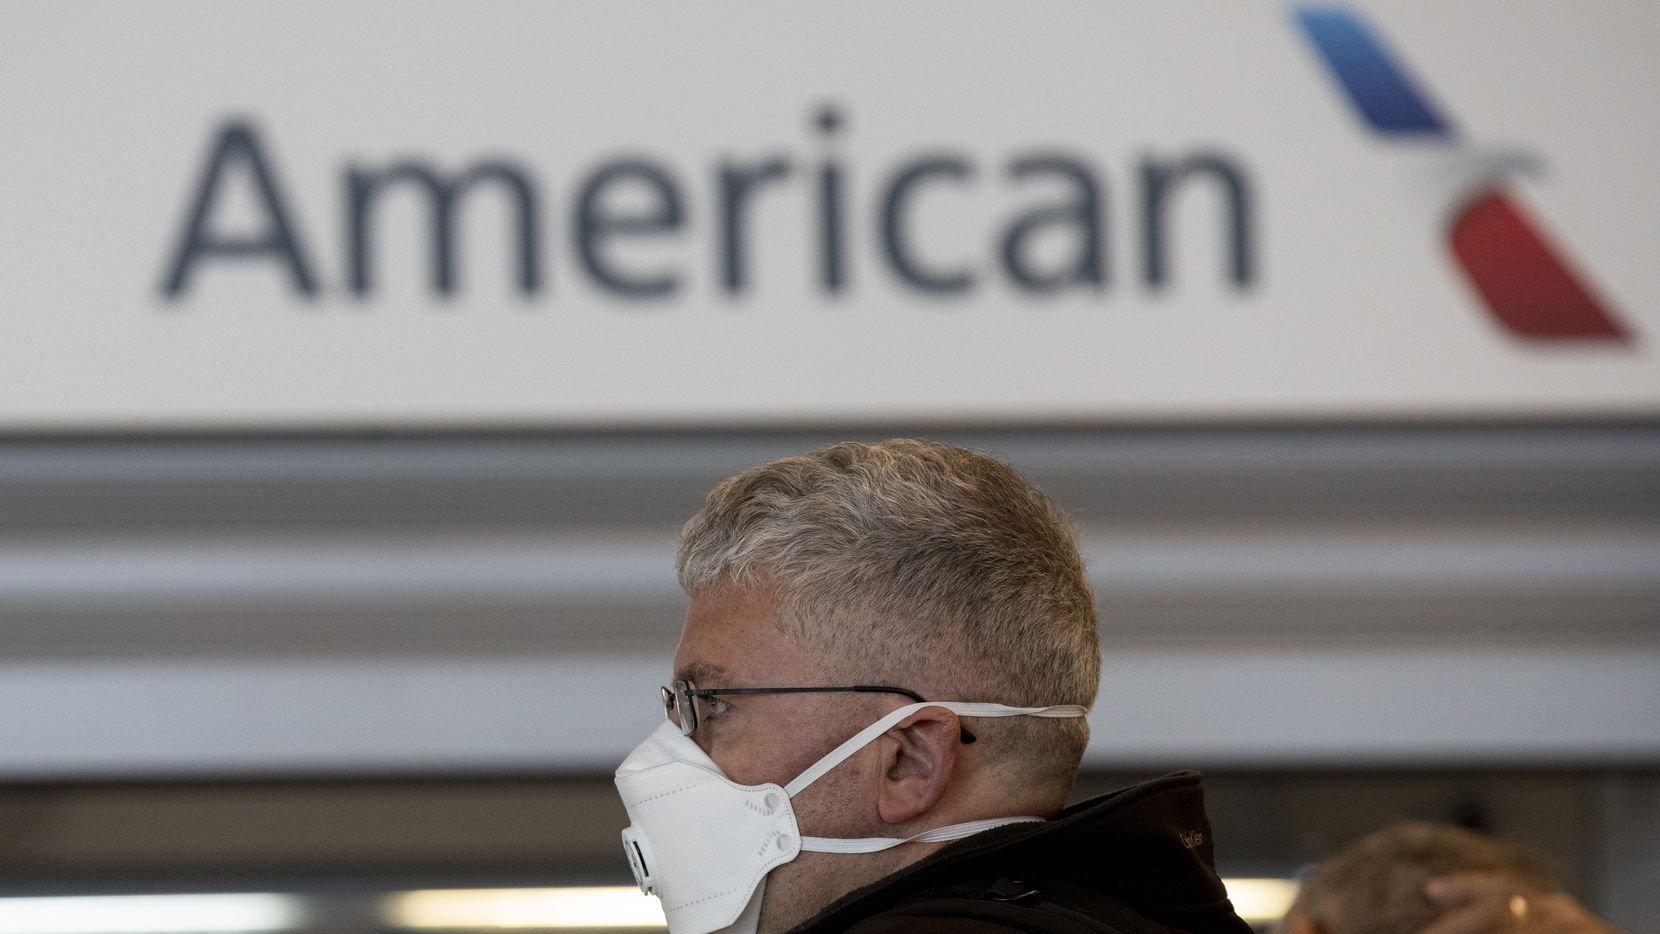 Over a third of American Airlines workers to go on voluntary leave or retire